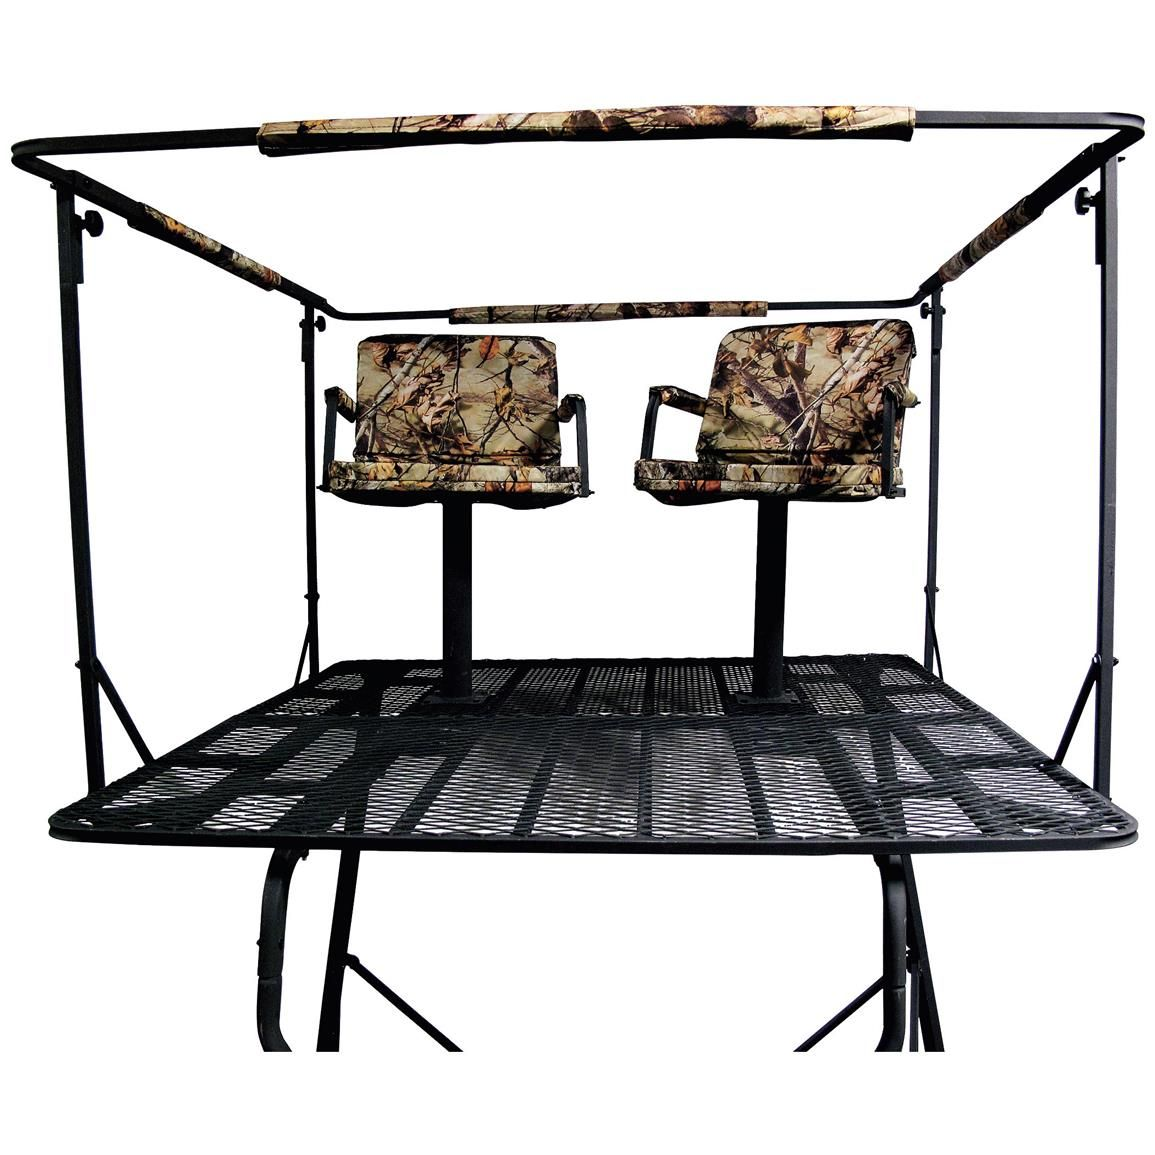 Guide Gear 2 Man 12 Tower Tree Stand Deer Stand Plans Tripod Deer Stand Hunting Stands